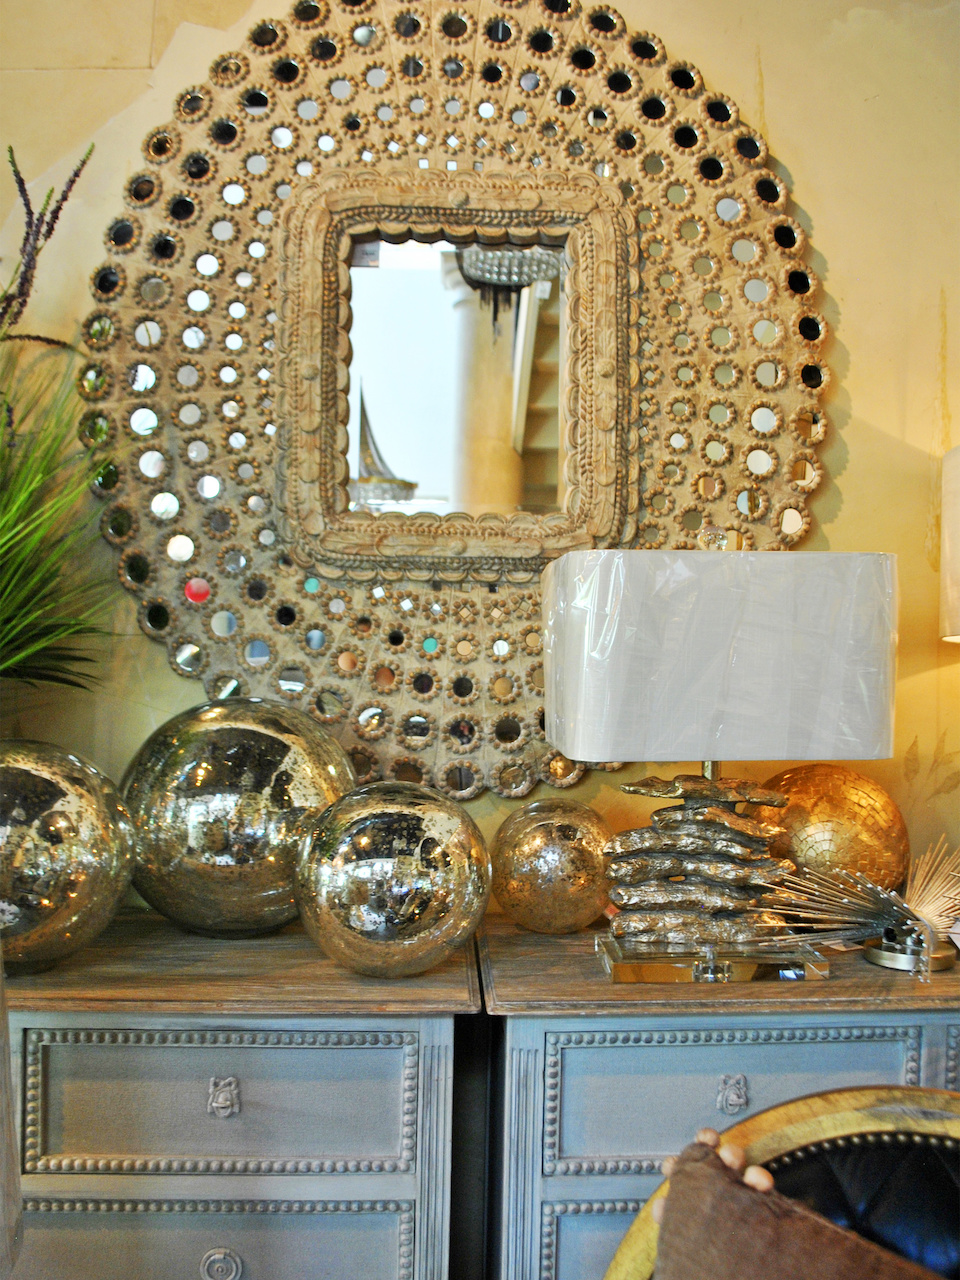 Mirrors, metallics and mercury accessories reflect the light and brighten any space.